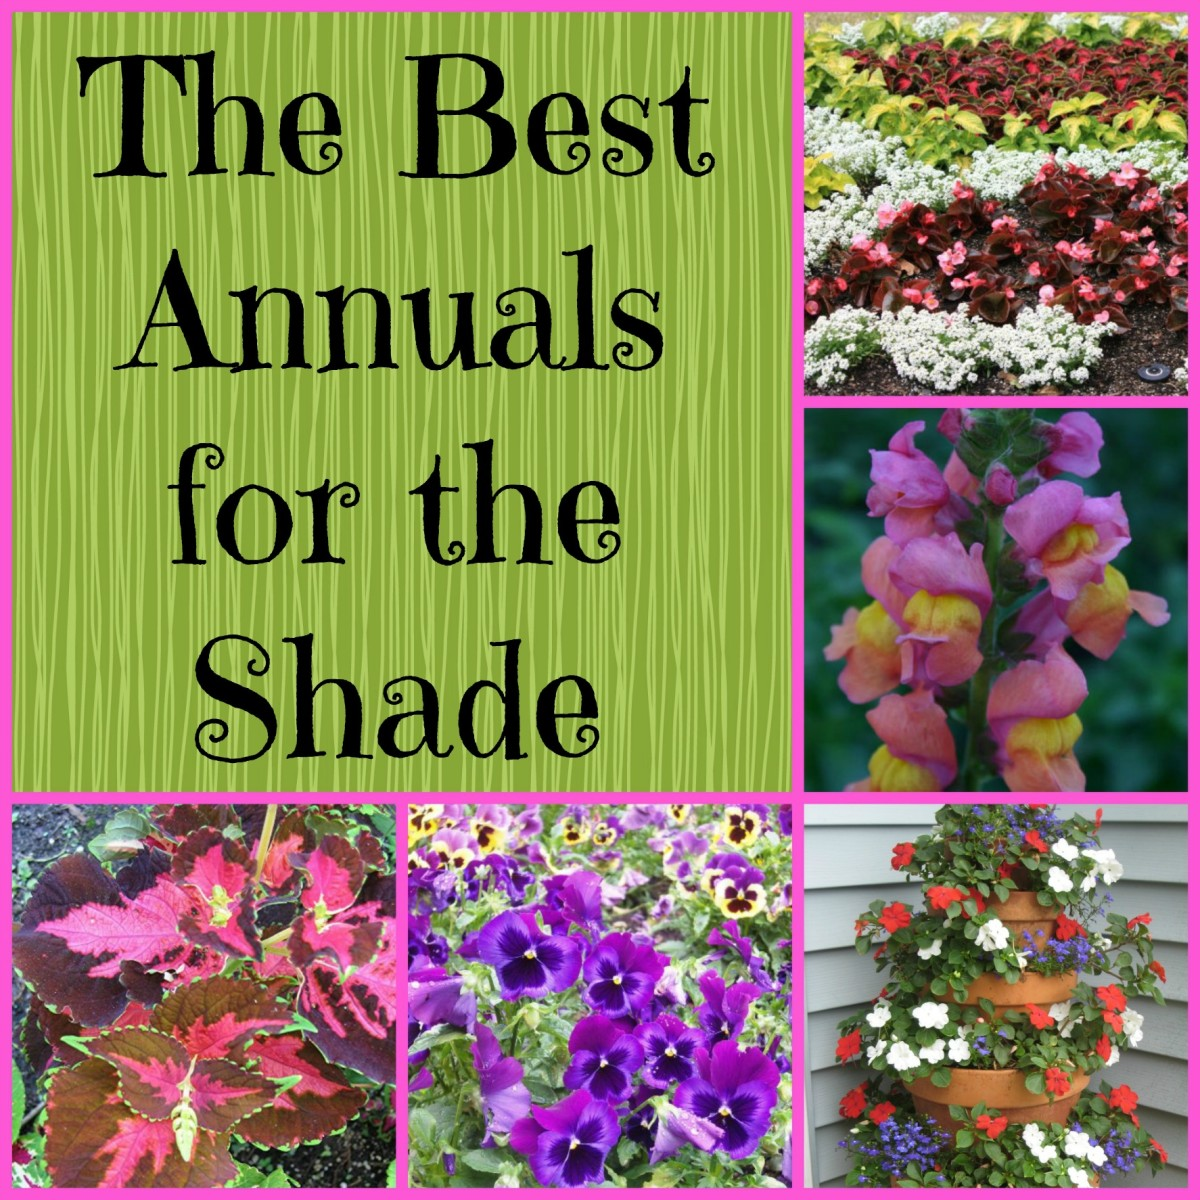 Gardening in the Shade: 9 Annual Plants for Shady Areas